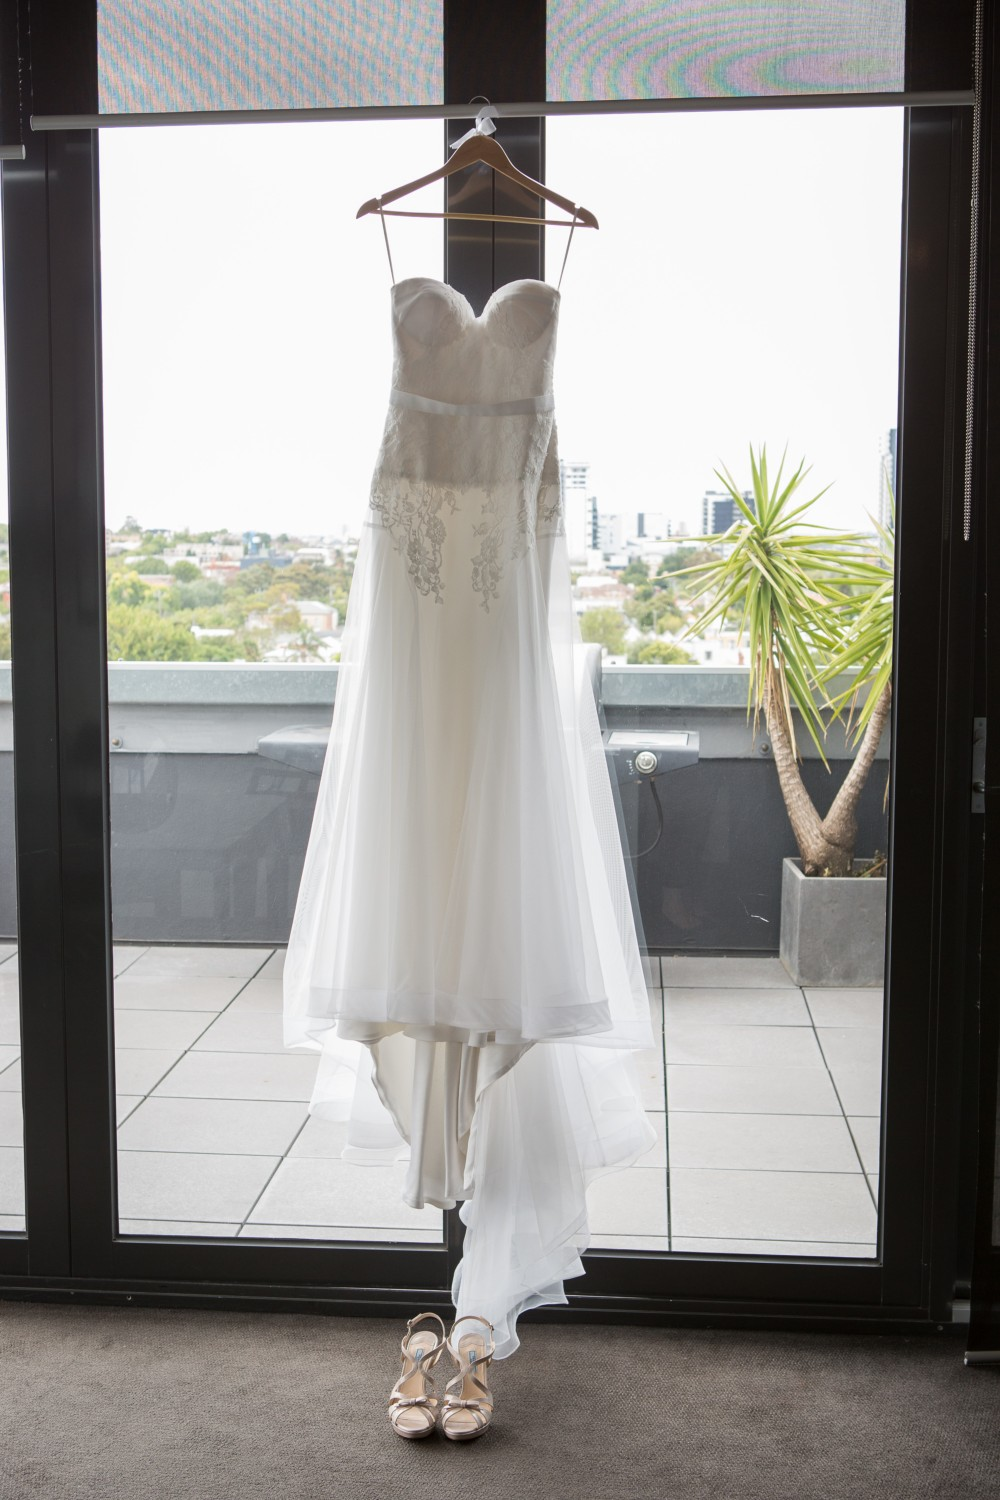 One day bridal second hand wedding dress on sale 50 off for Second hand wedding dresses for sale